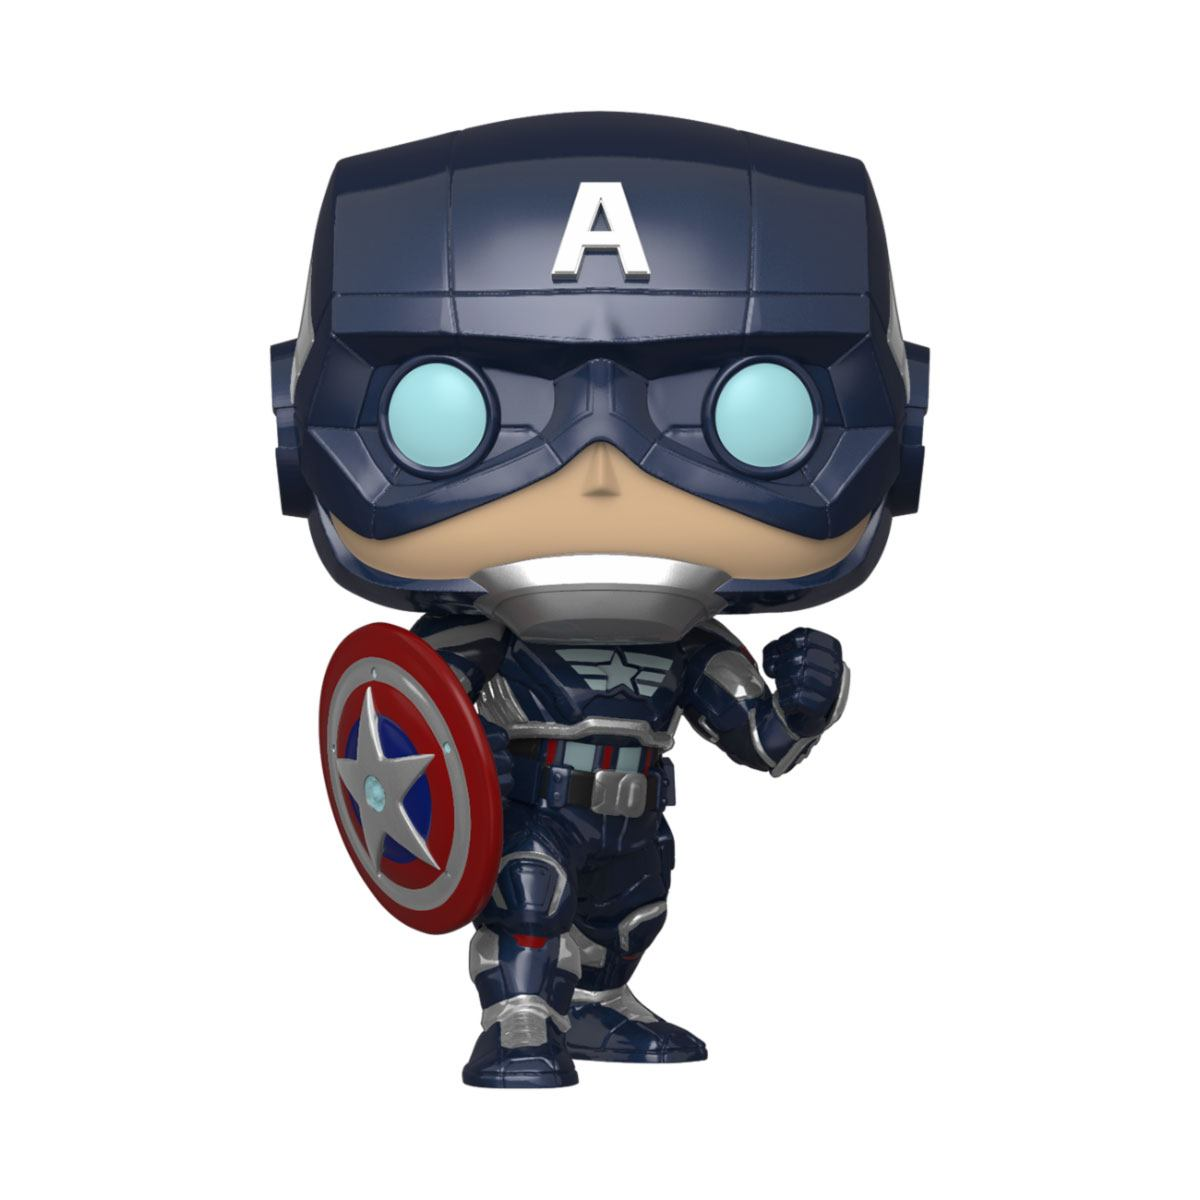 Marvel's Avengers (2020 video game) POP! Marvel Vinyl Figure Captain America 9 cm